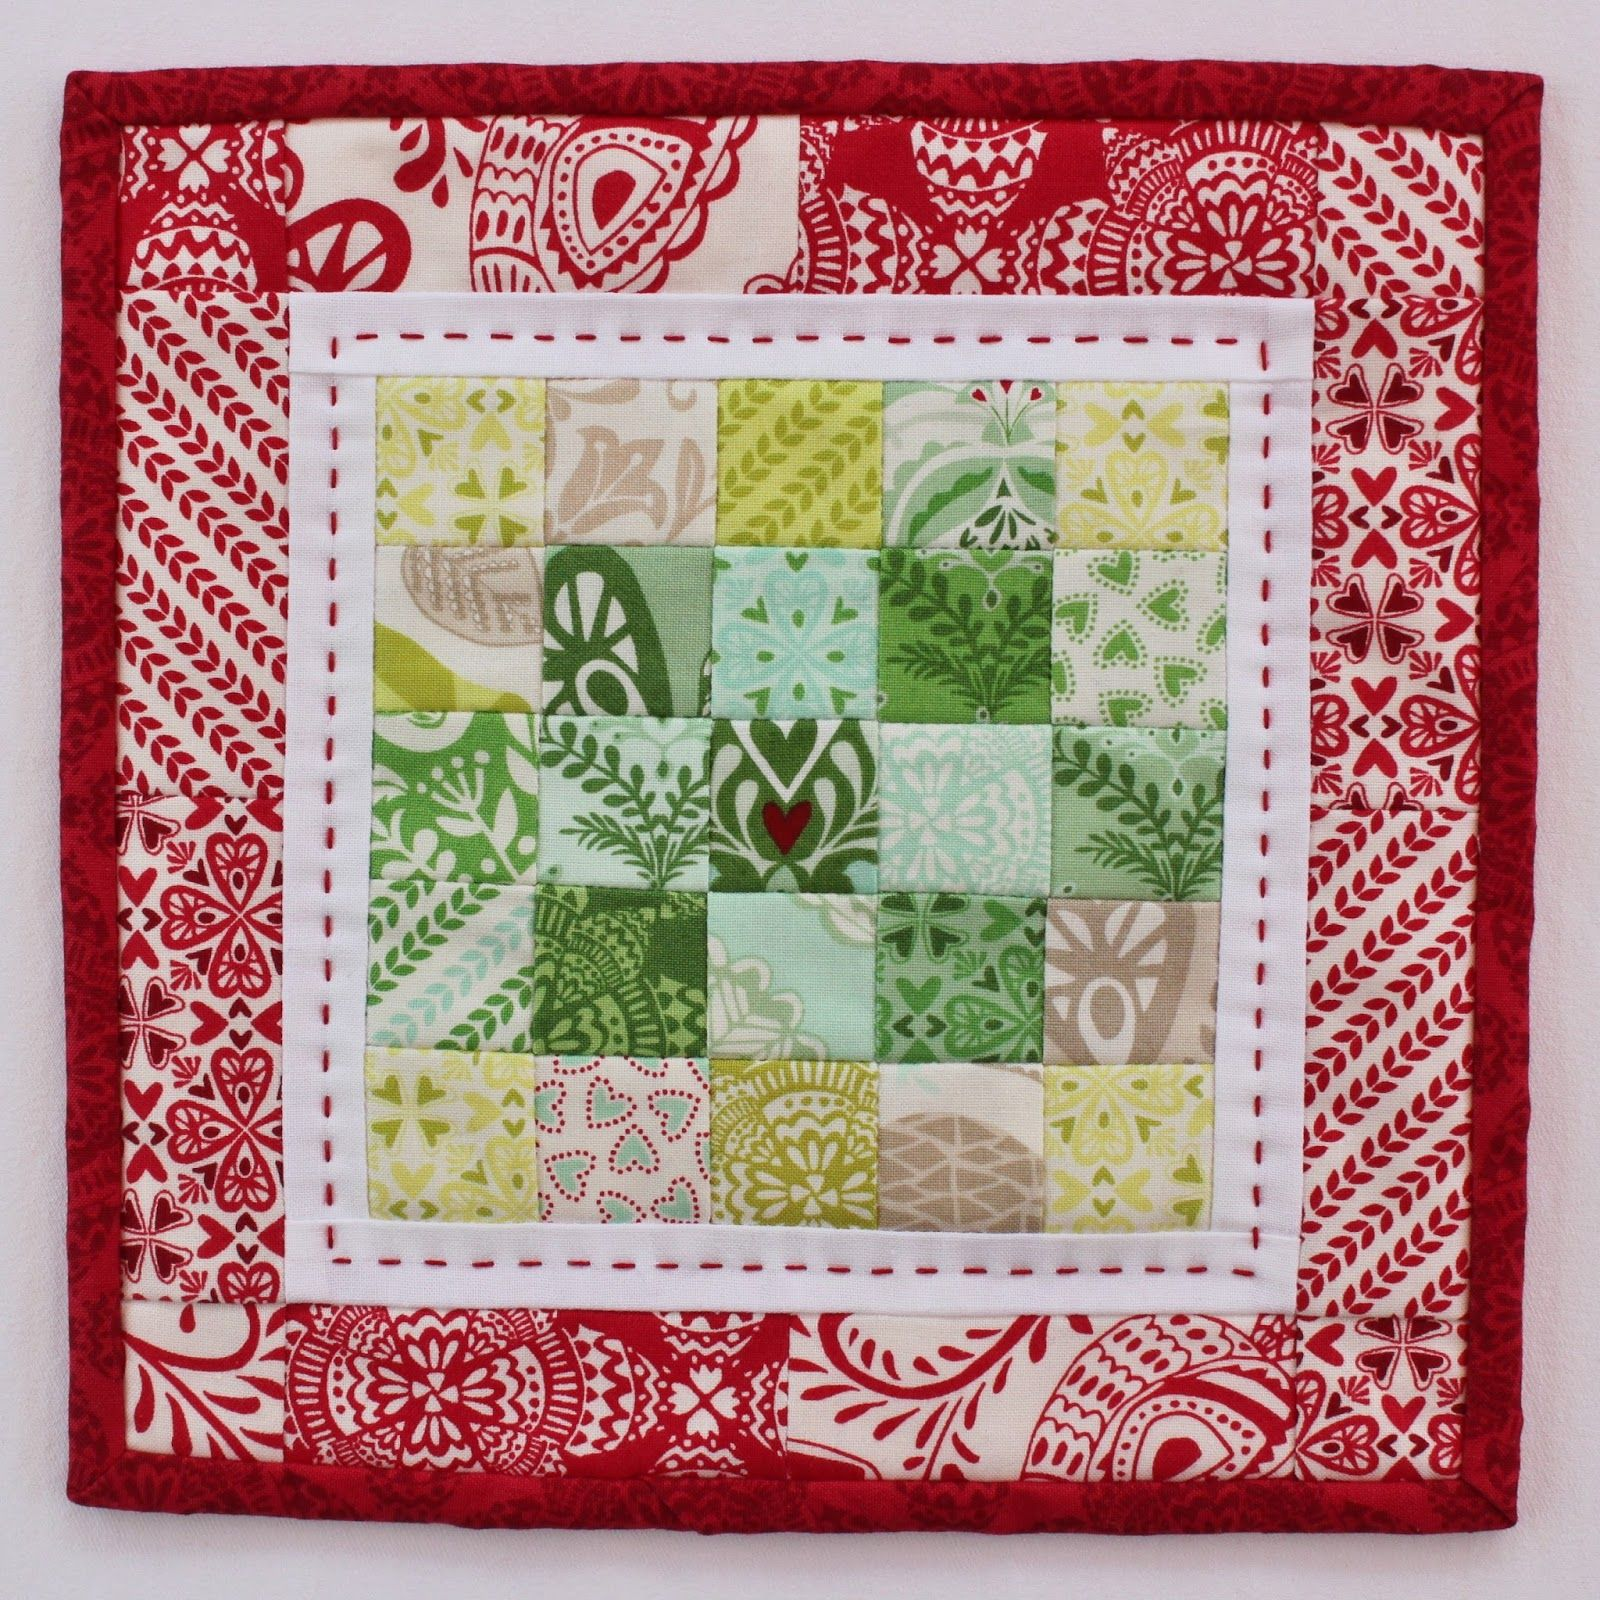 North Woods mini Christmas quilt by Jen Daly Quilts. | Christmas ... : northwoods quilt - Adamdwight.com